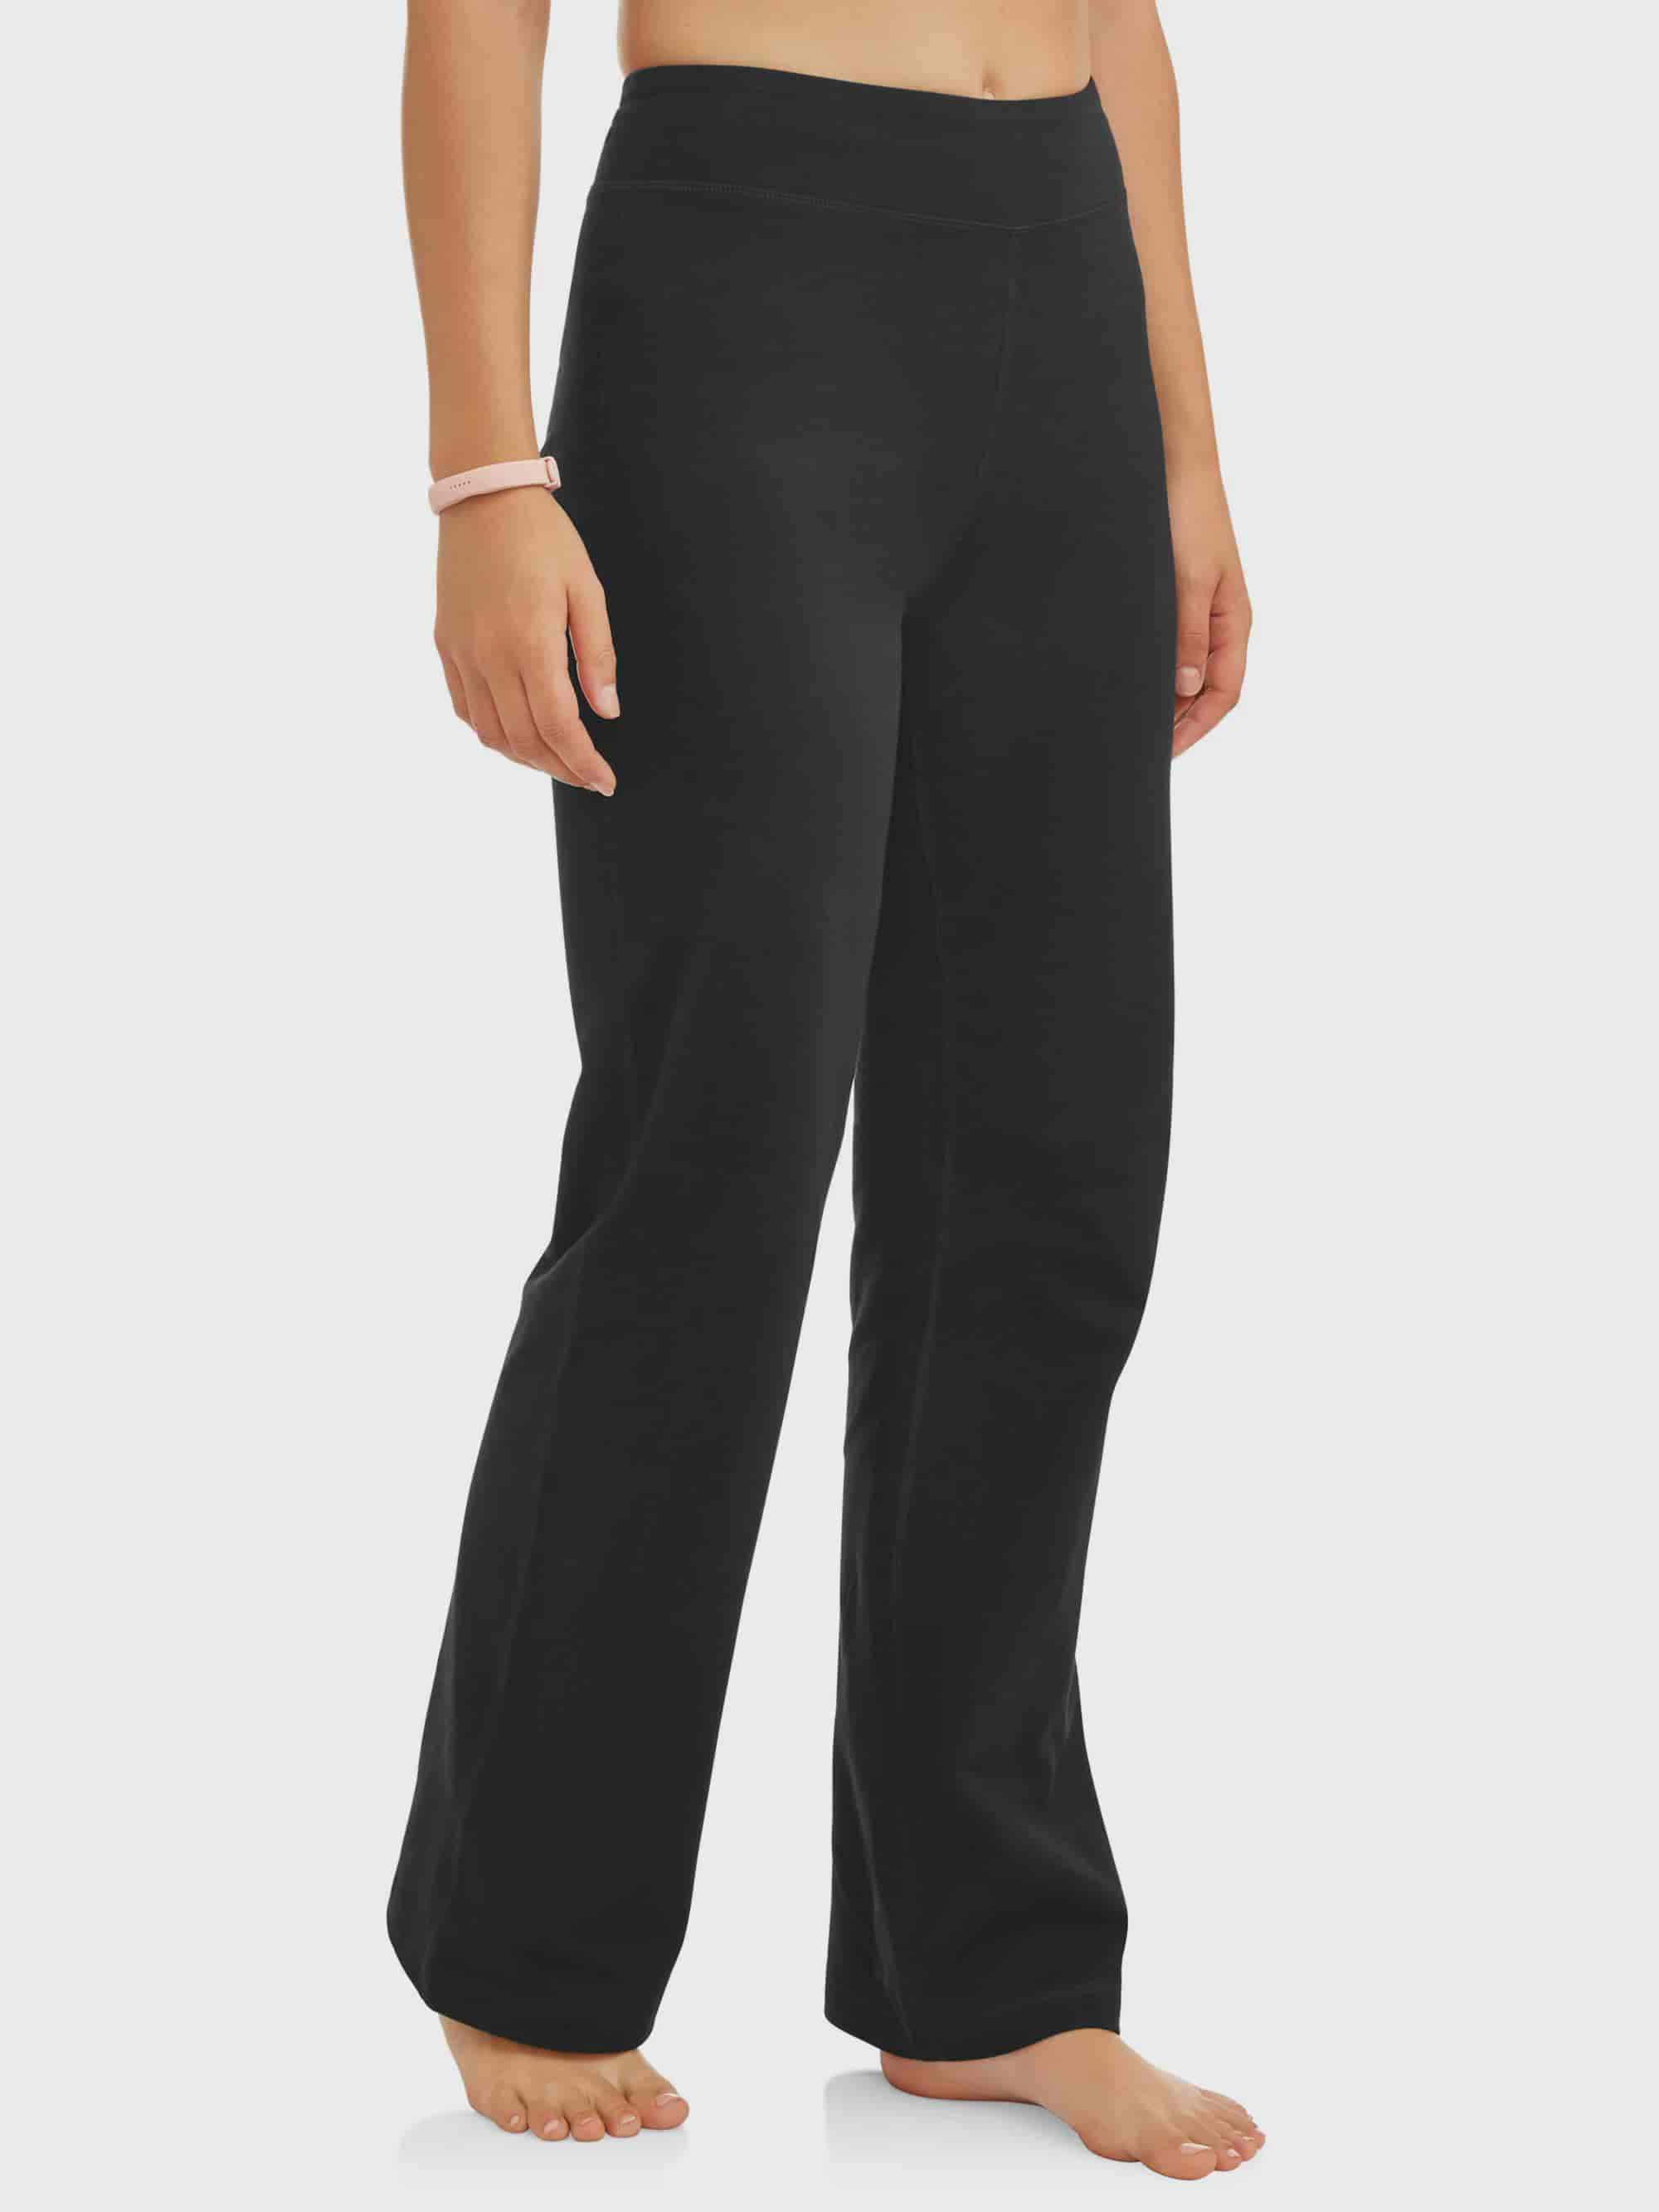 f901540138573 Athletic Works - Women's Dri More Core Bootcut Yoga Pant Available in  Regular and Petite - Walmart.com